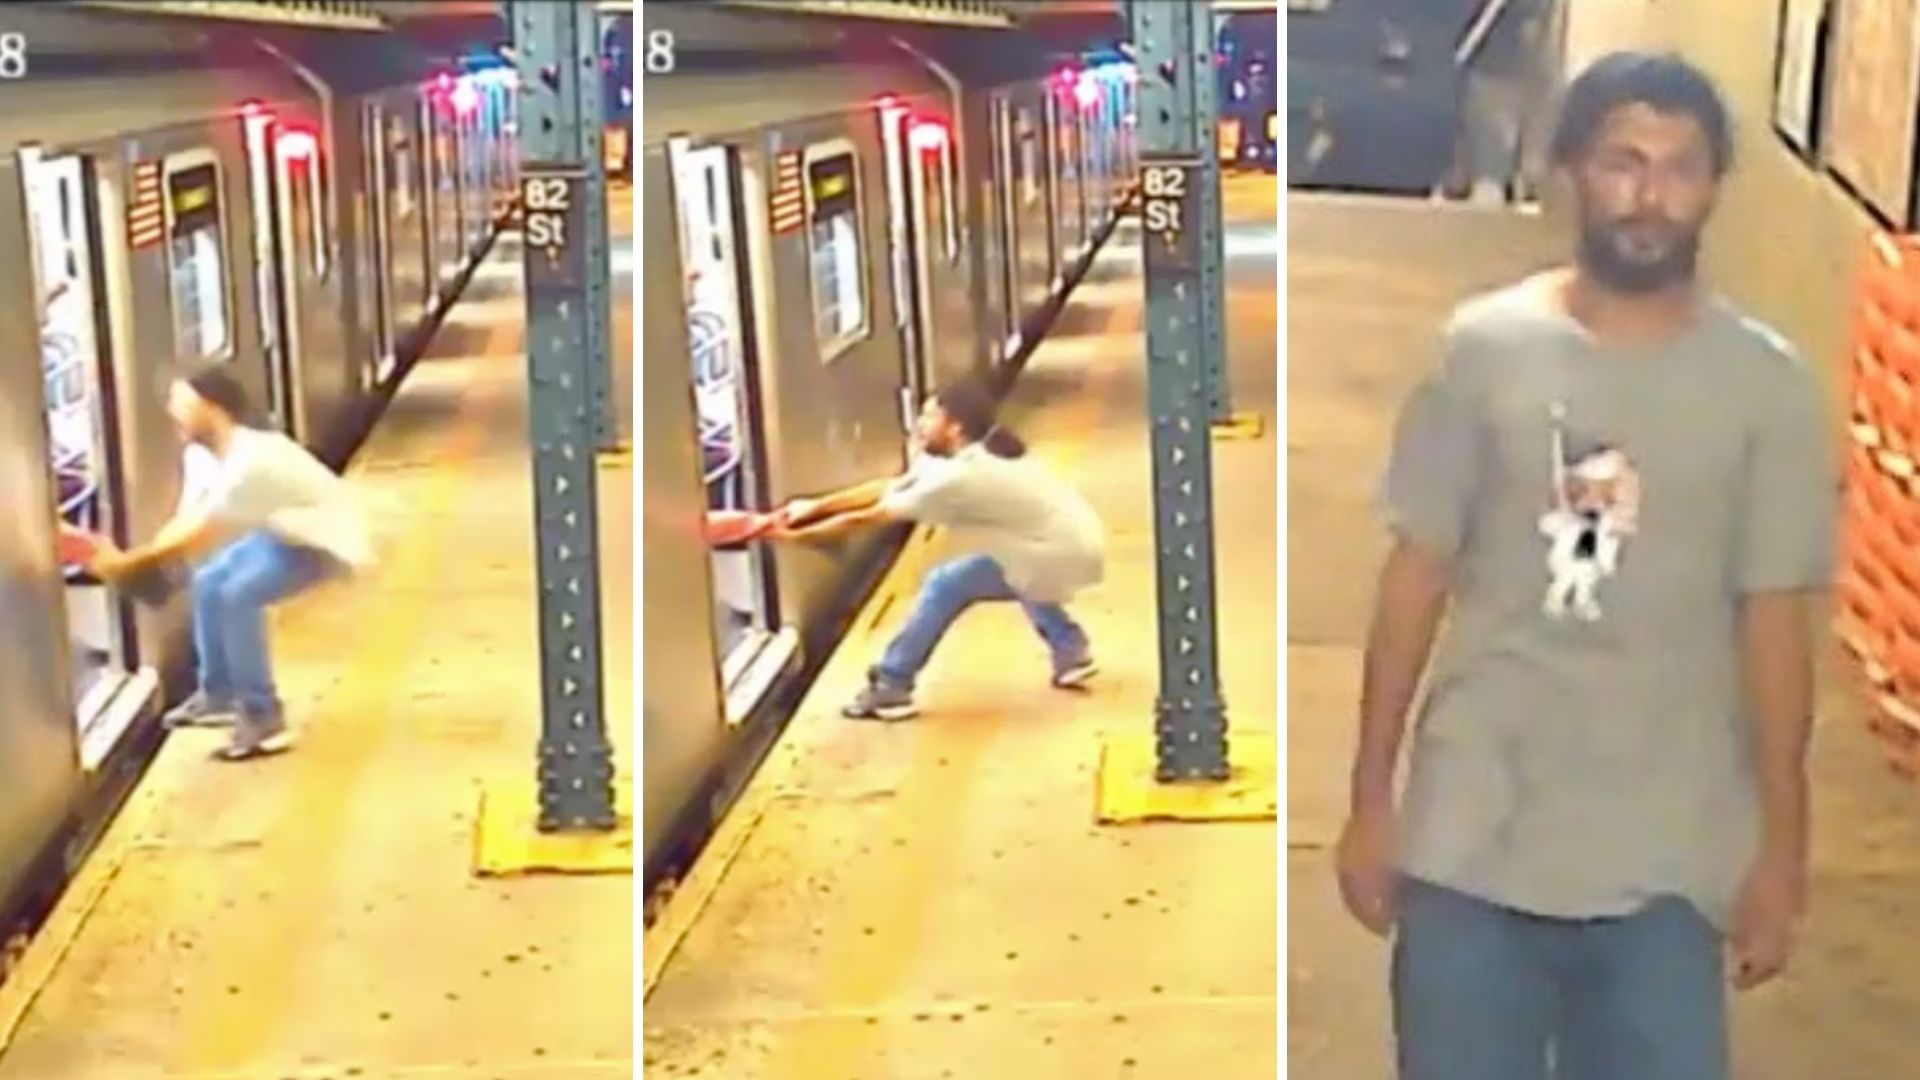 Queens subway attempted robbery